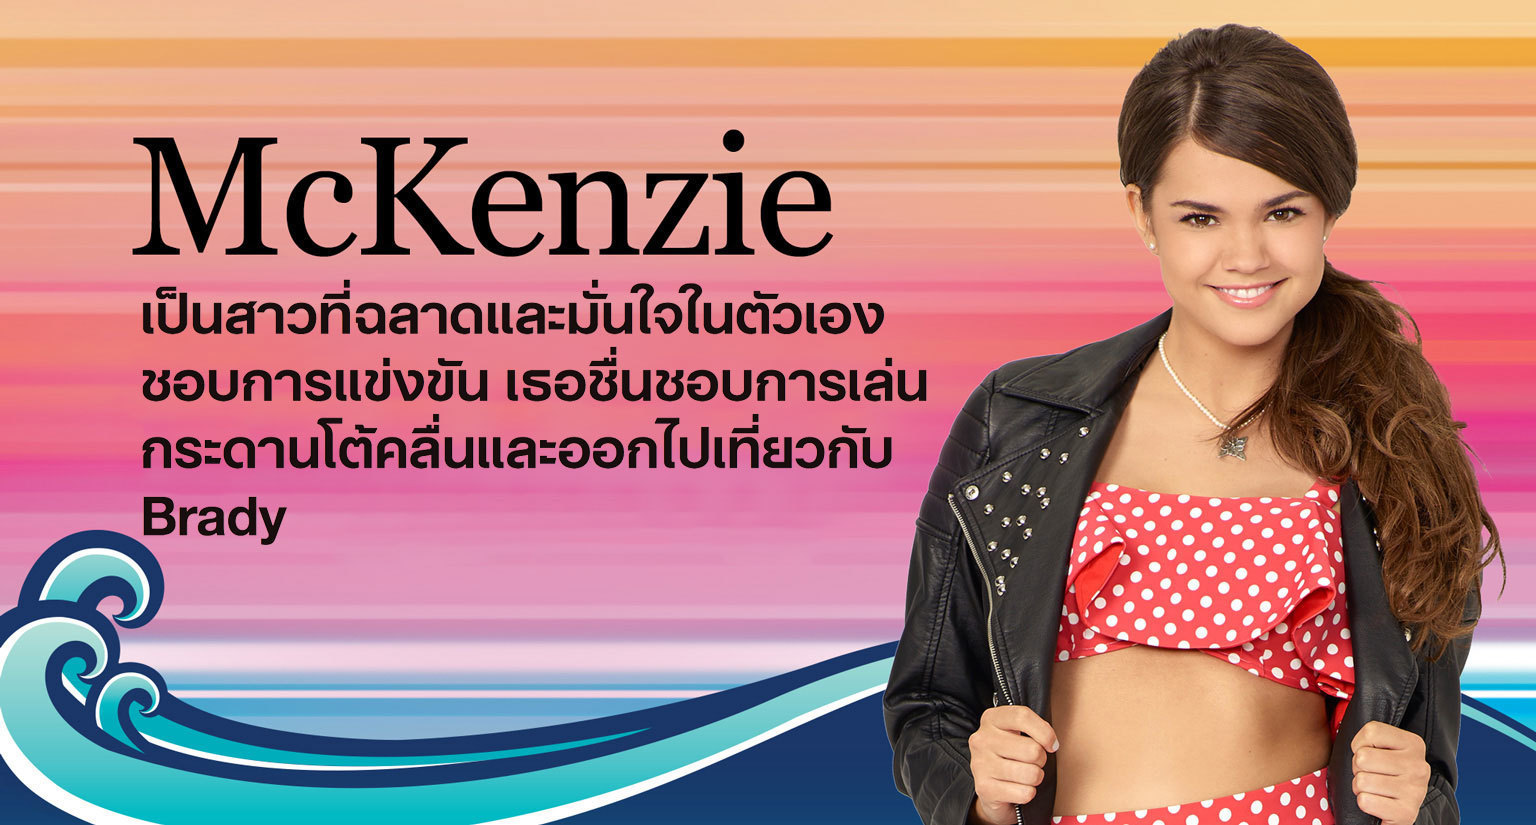 Teen Beach 2 - Show Home - McKenzie Character Hero - TH